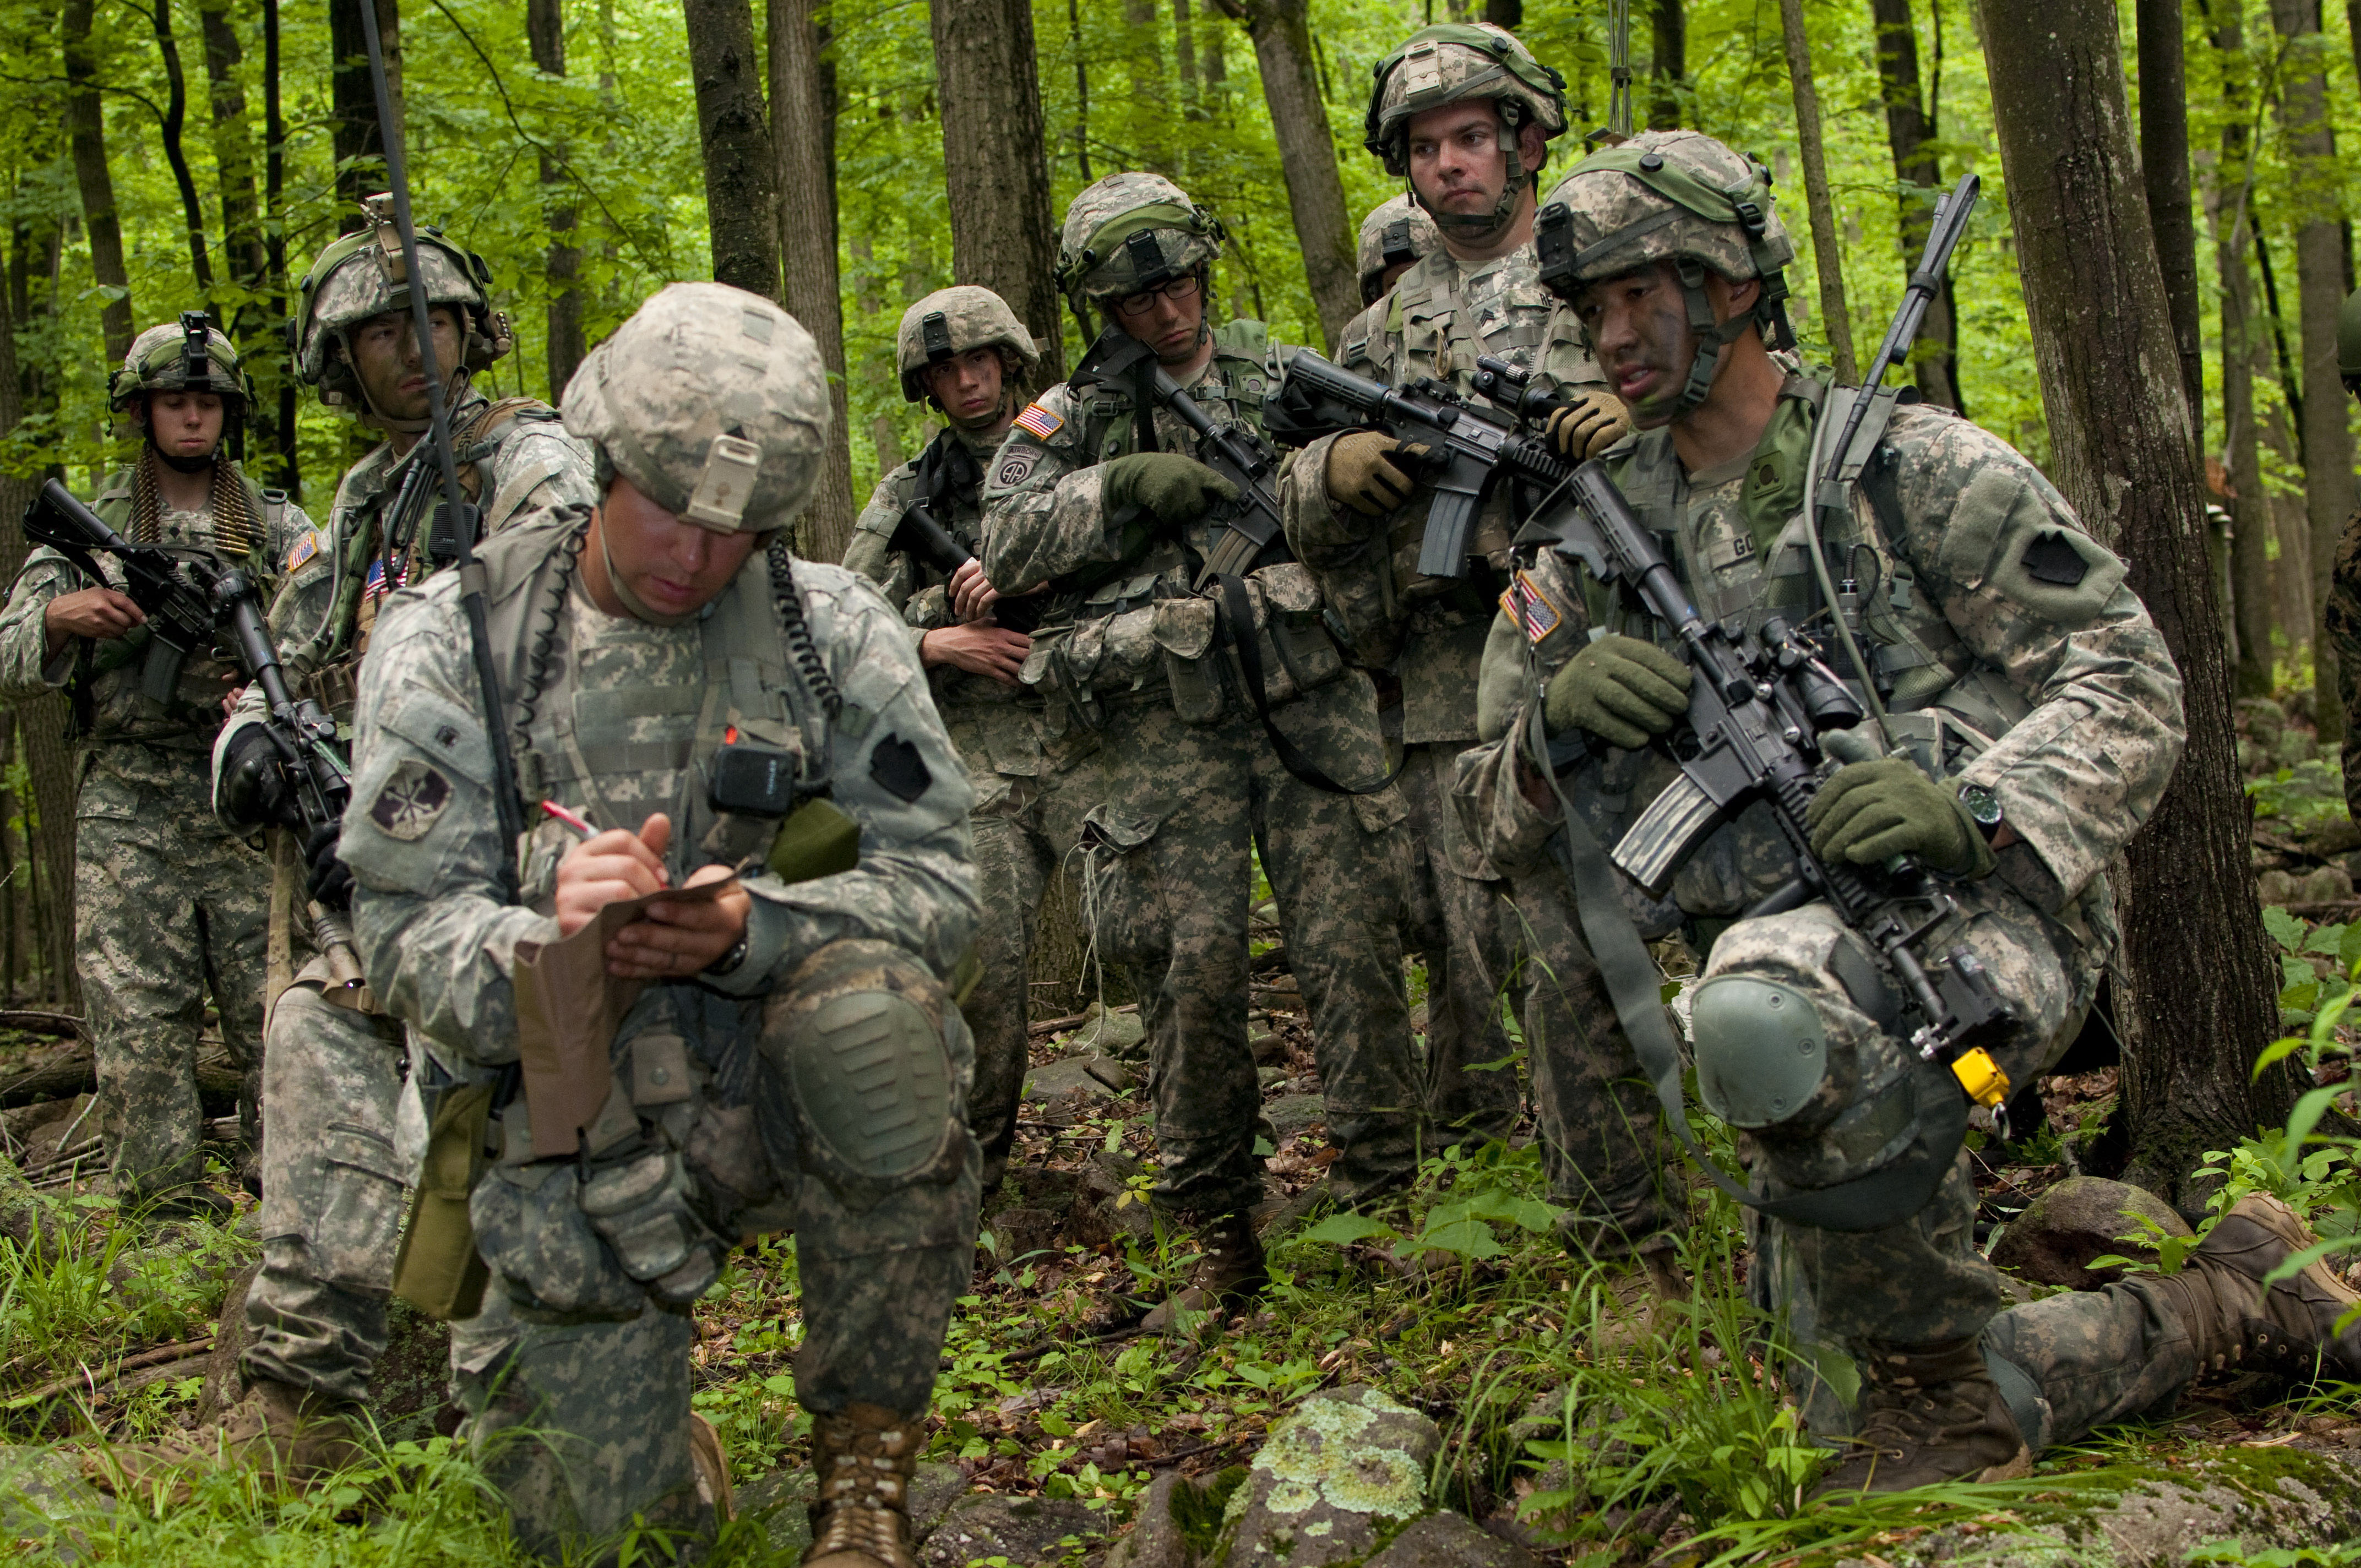 state partnership program: maryland soldiers gain new perspectives